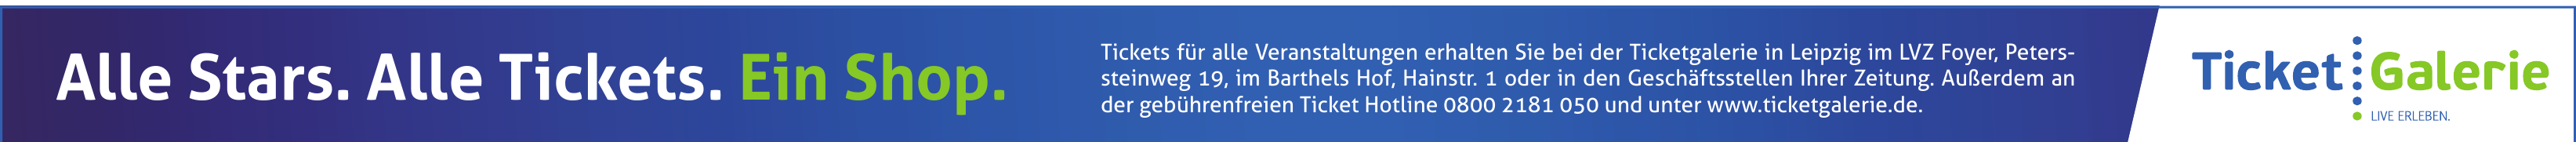 Ticketgalerie in Leipzig